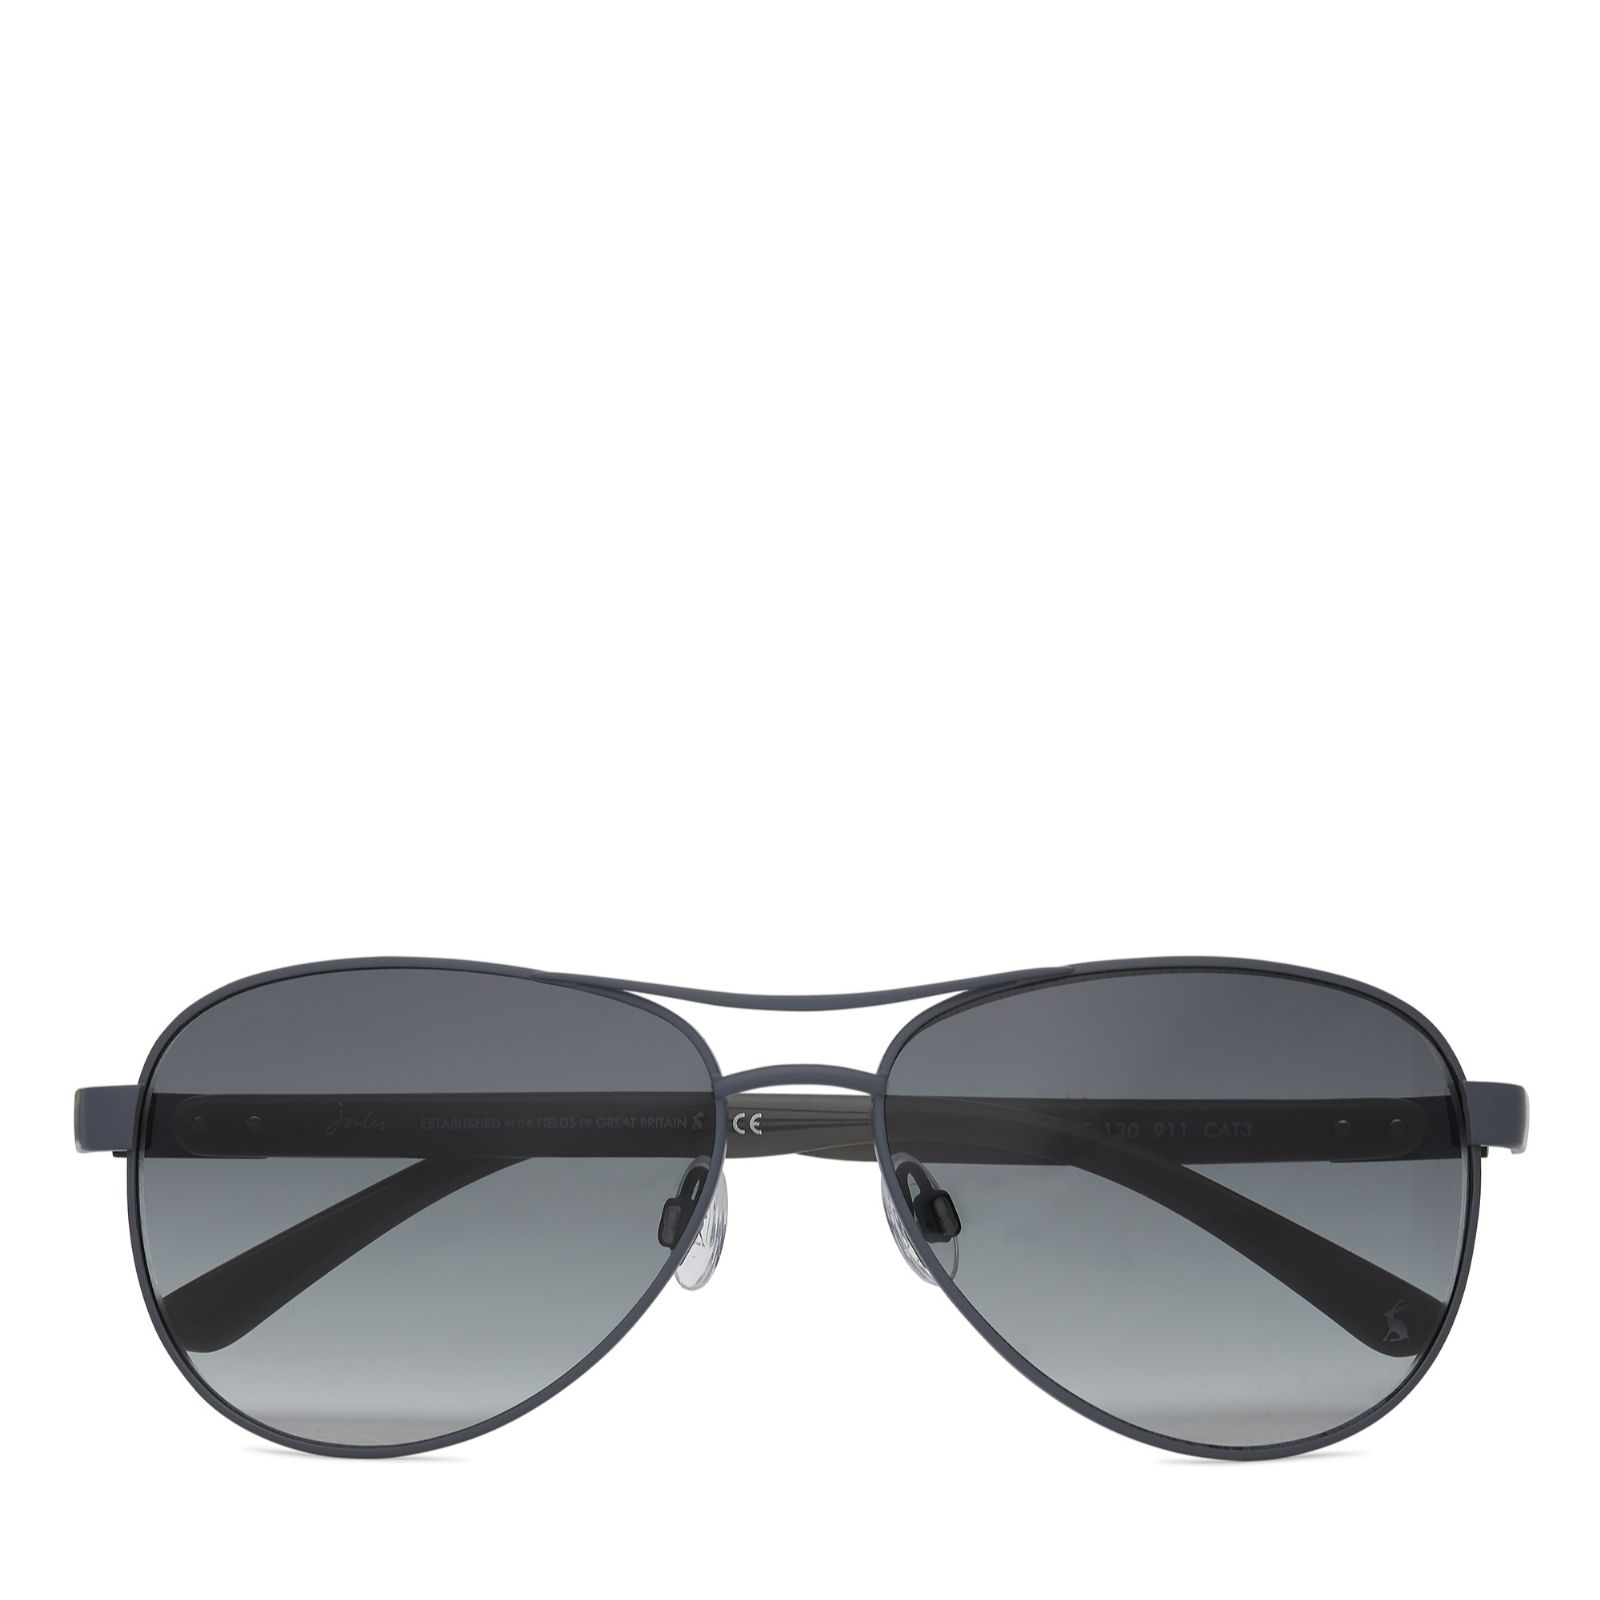 fe2c143e888 Joules Cowes Aviator Sunglasses with Pouch - QVC UK